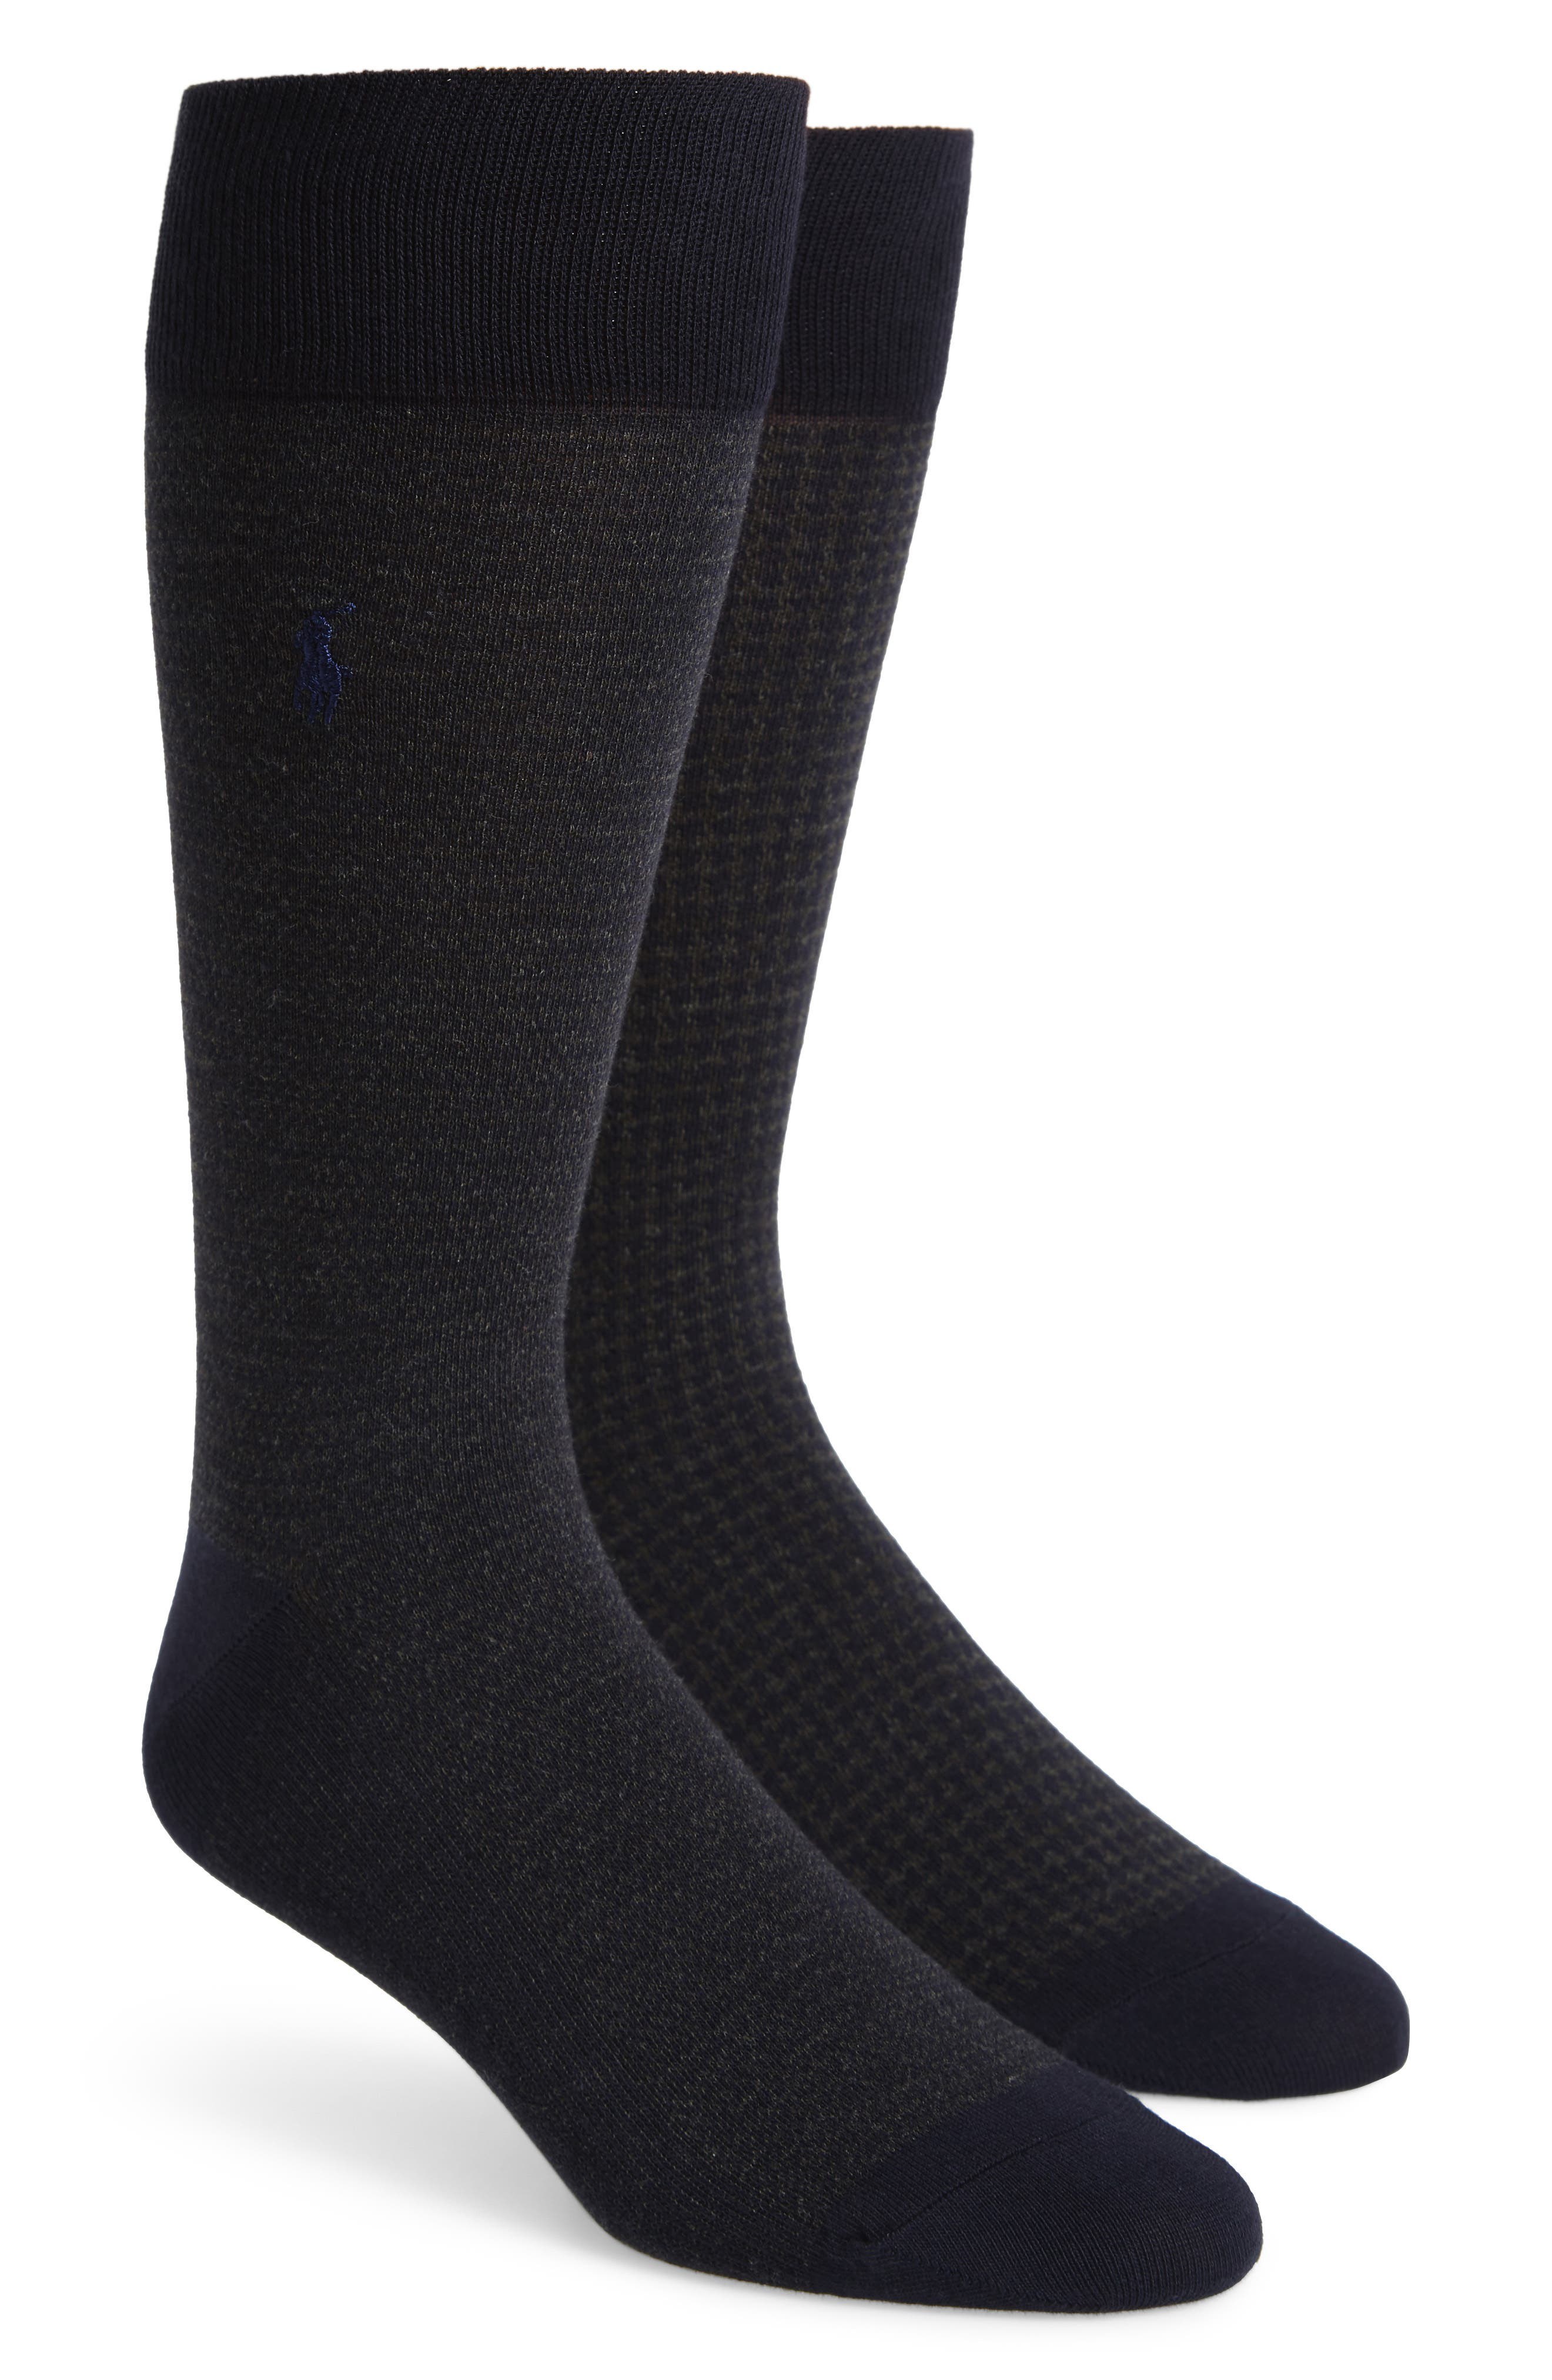 2-Pack Assorted Houndstooth Dress Socks,                             Main thumbnail 1, color,                             Navy